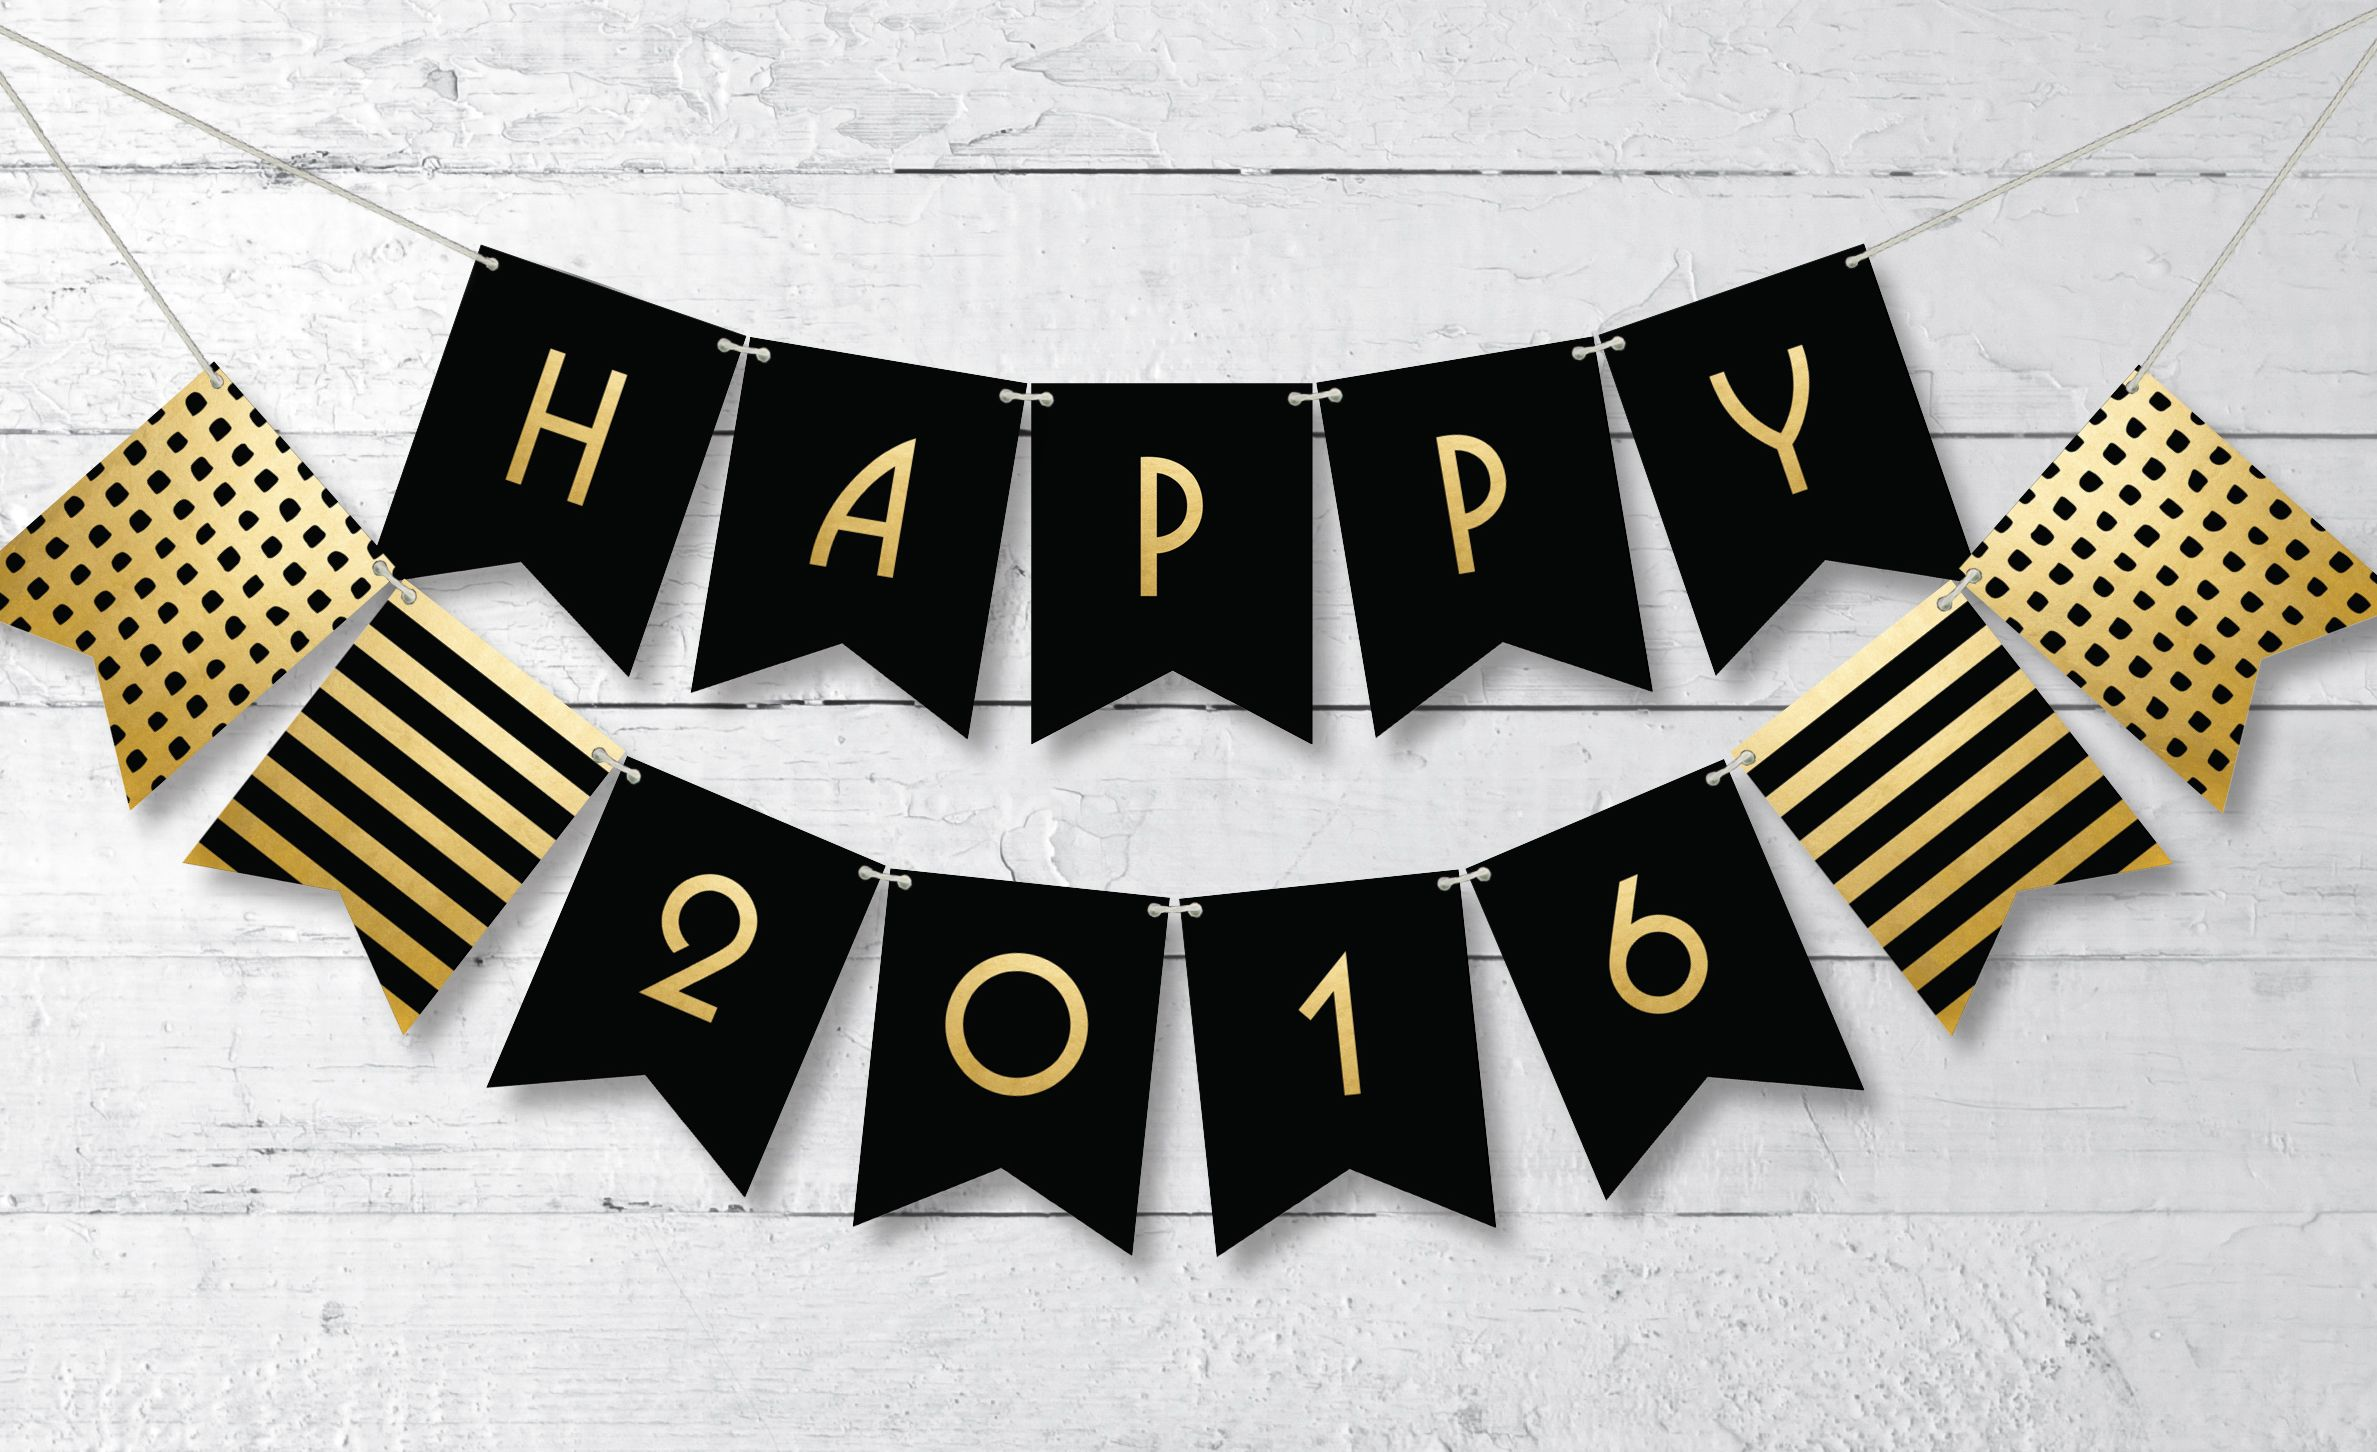 celebrate new years eve in a classy way with this free printable happy 2016 banner in black and gold